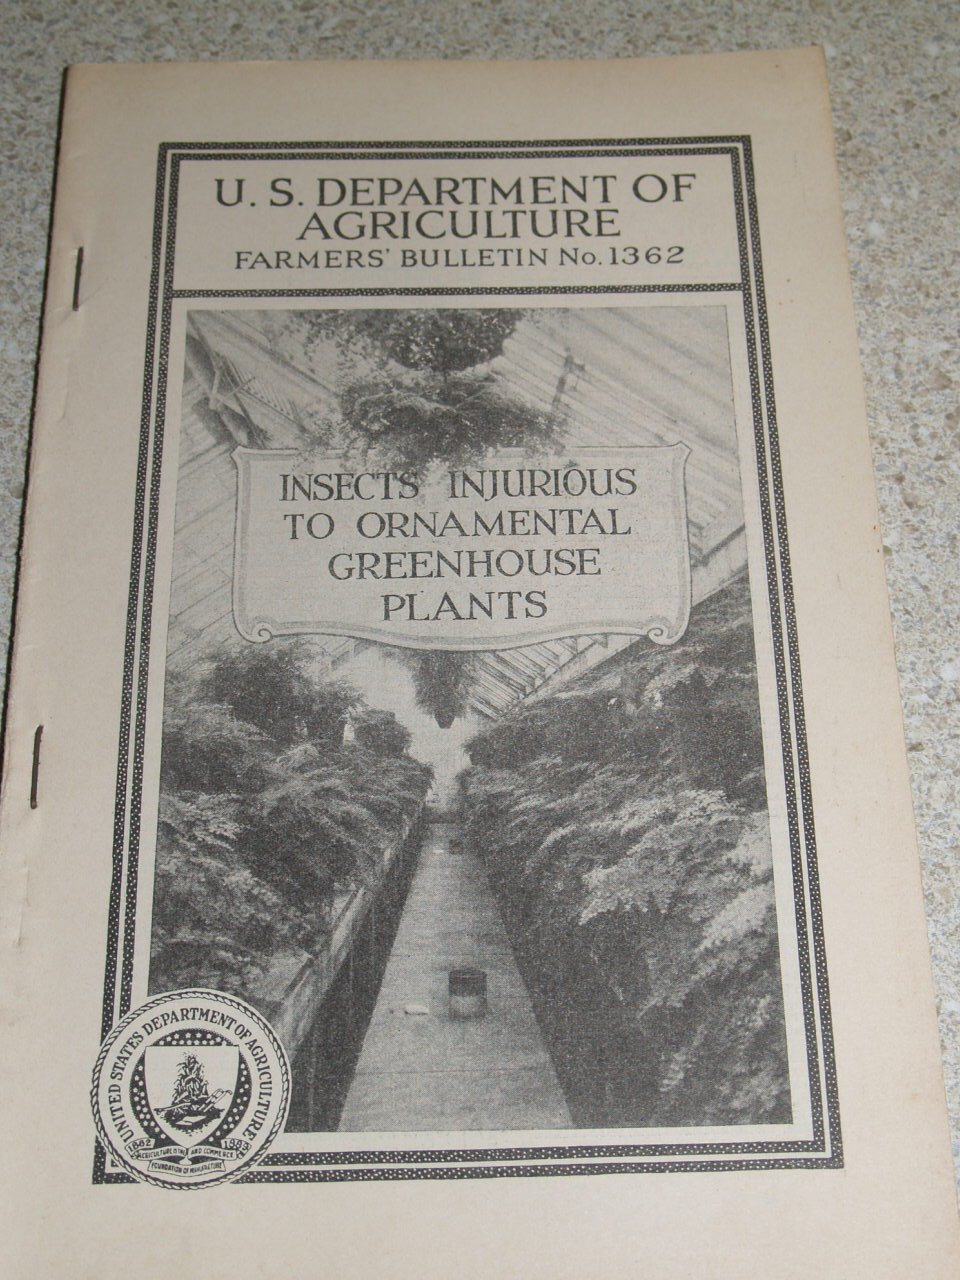 U.S. Dept. of Agriculture Farmers' Bulletin No. 1362 - Insects Injurious to Ornamental Greenhouse Plants